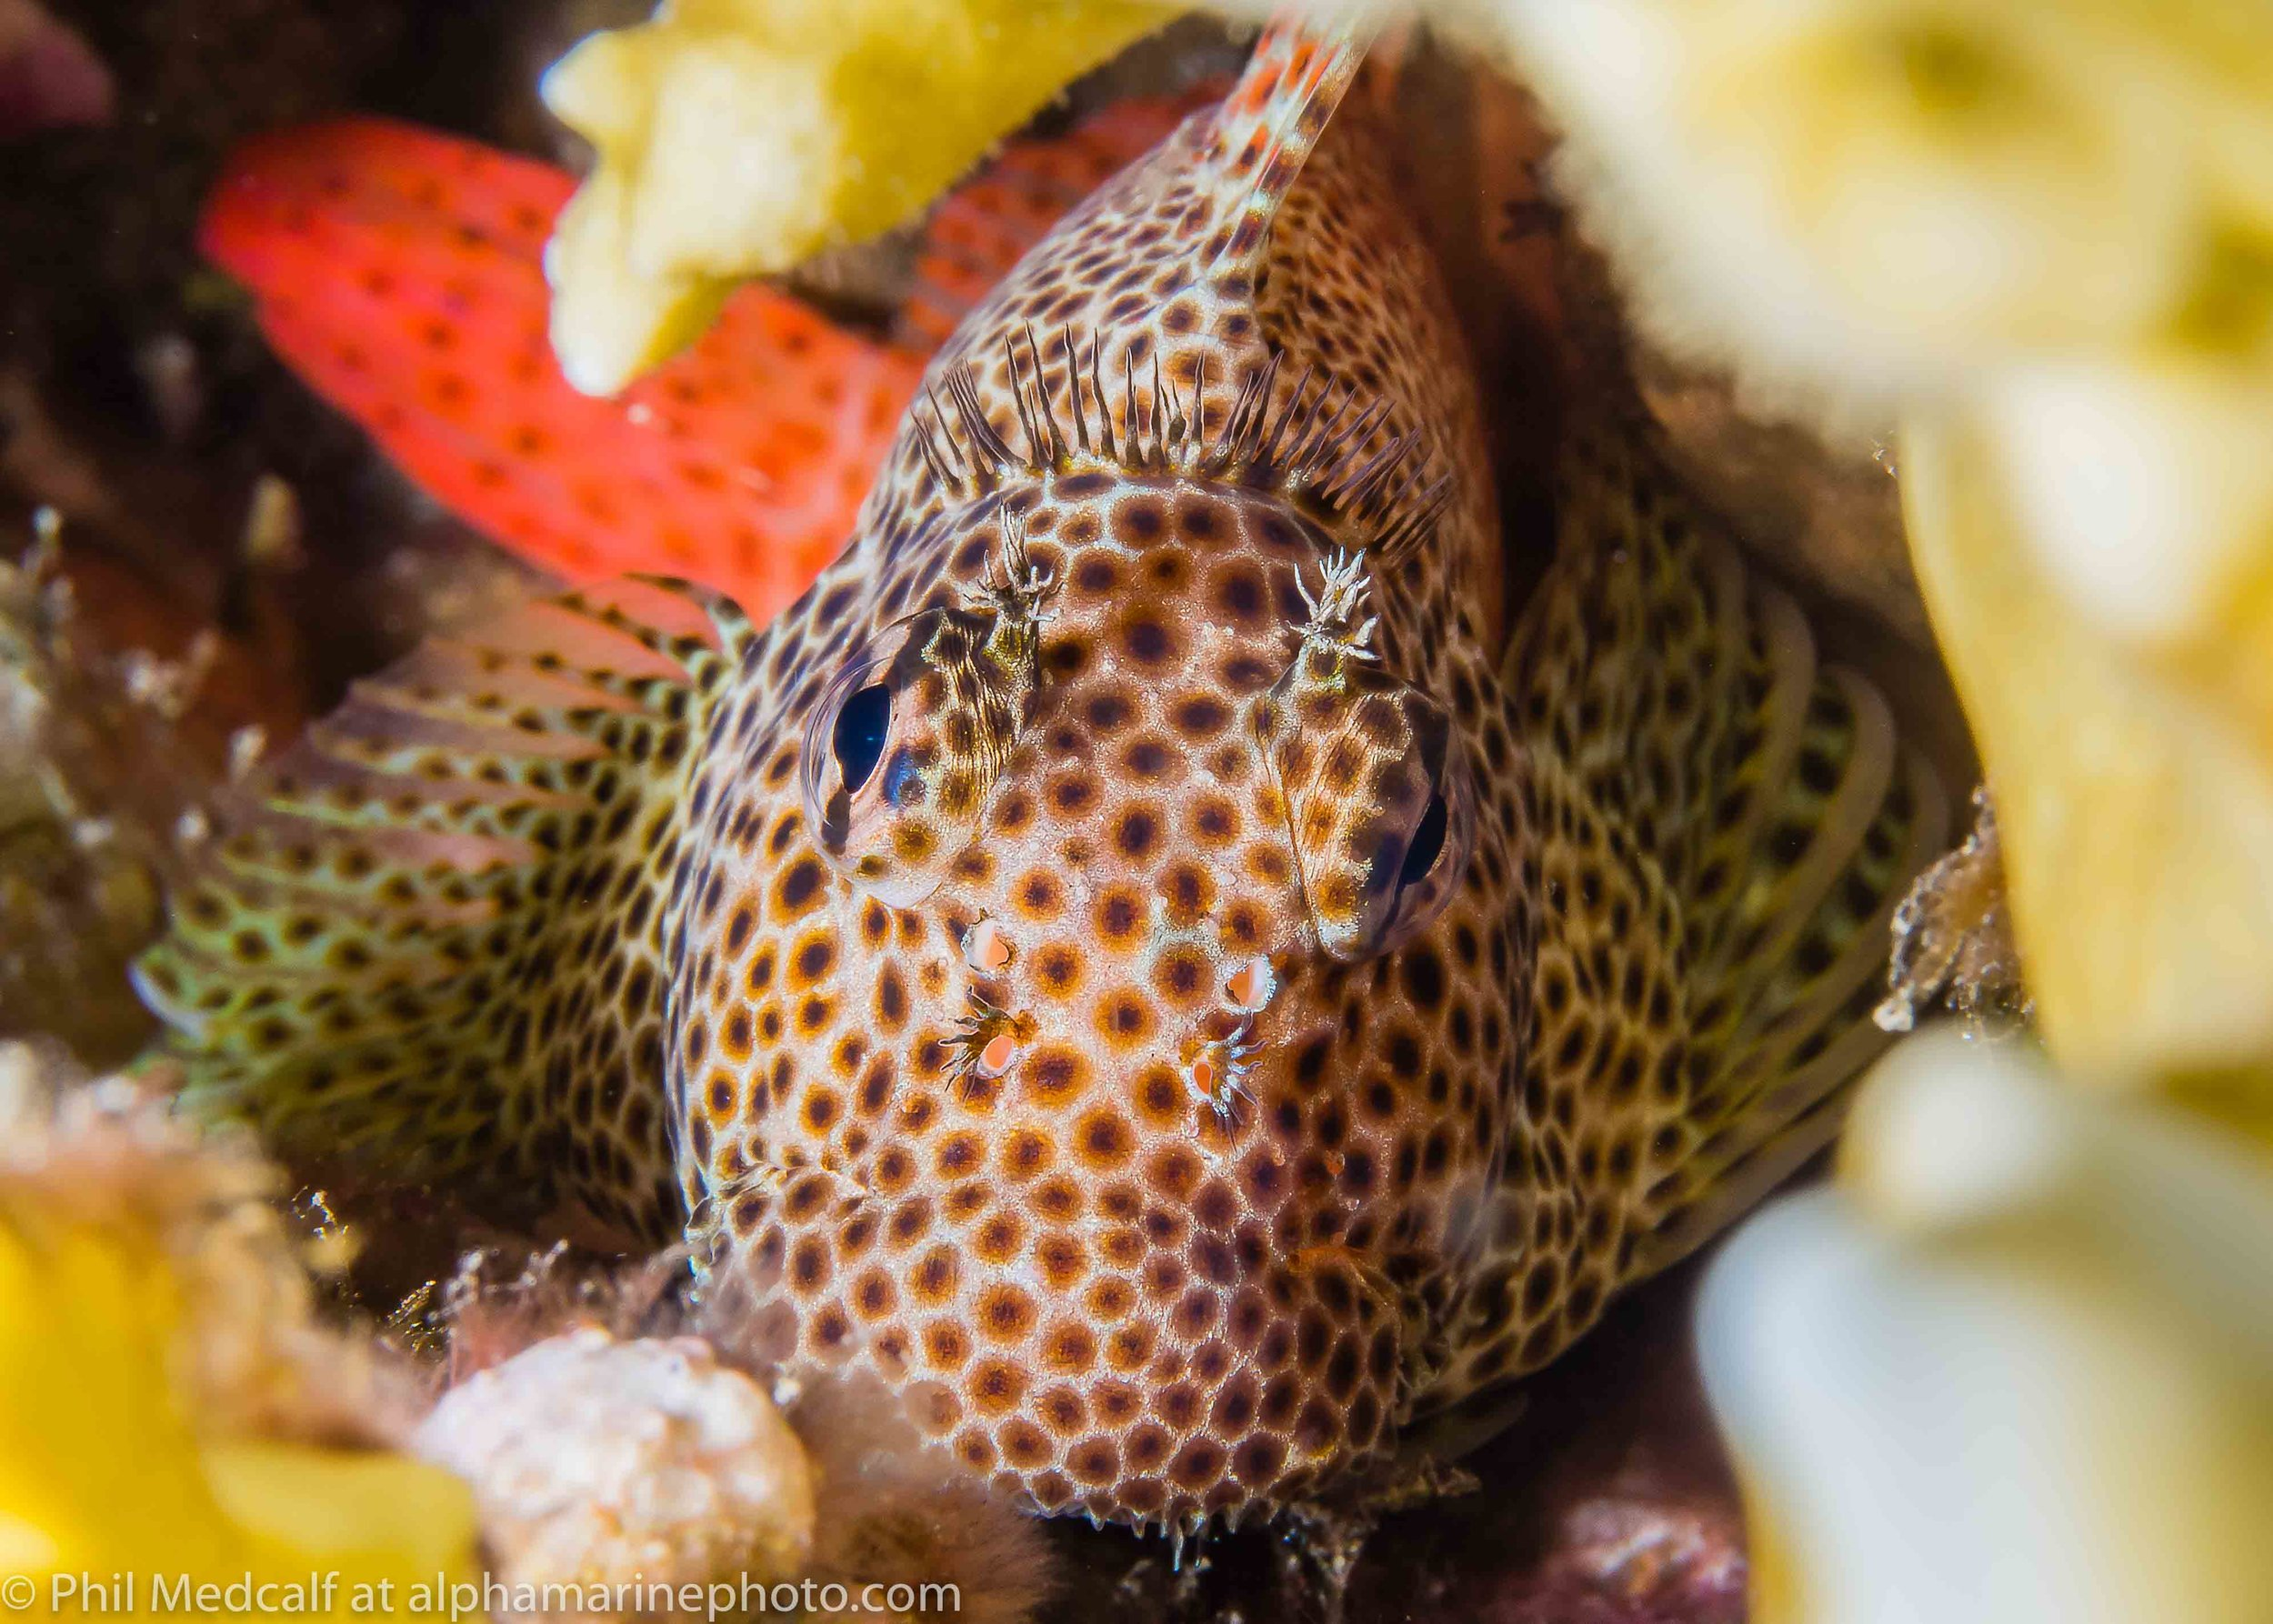 When using two strobes in a confined space you may struggle to get both in a position to light your subject easily. In this case the right side of the blenny is in shadow because the fire coral blocked my righthand strobe.